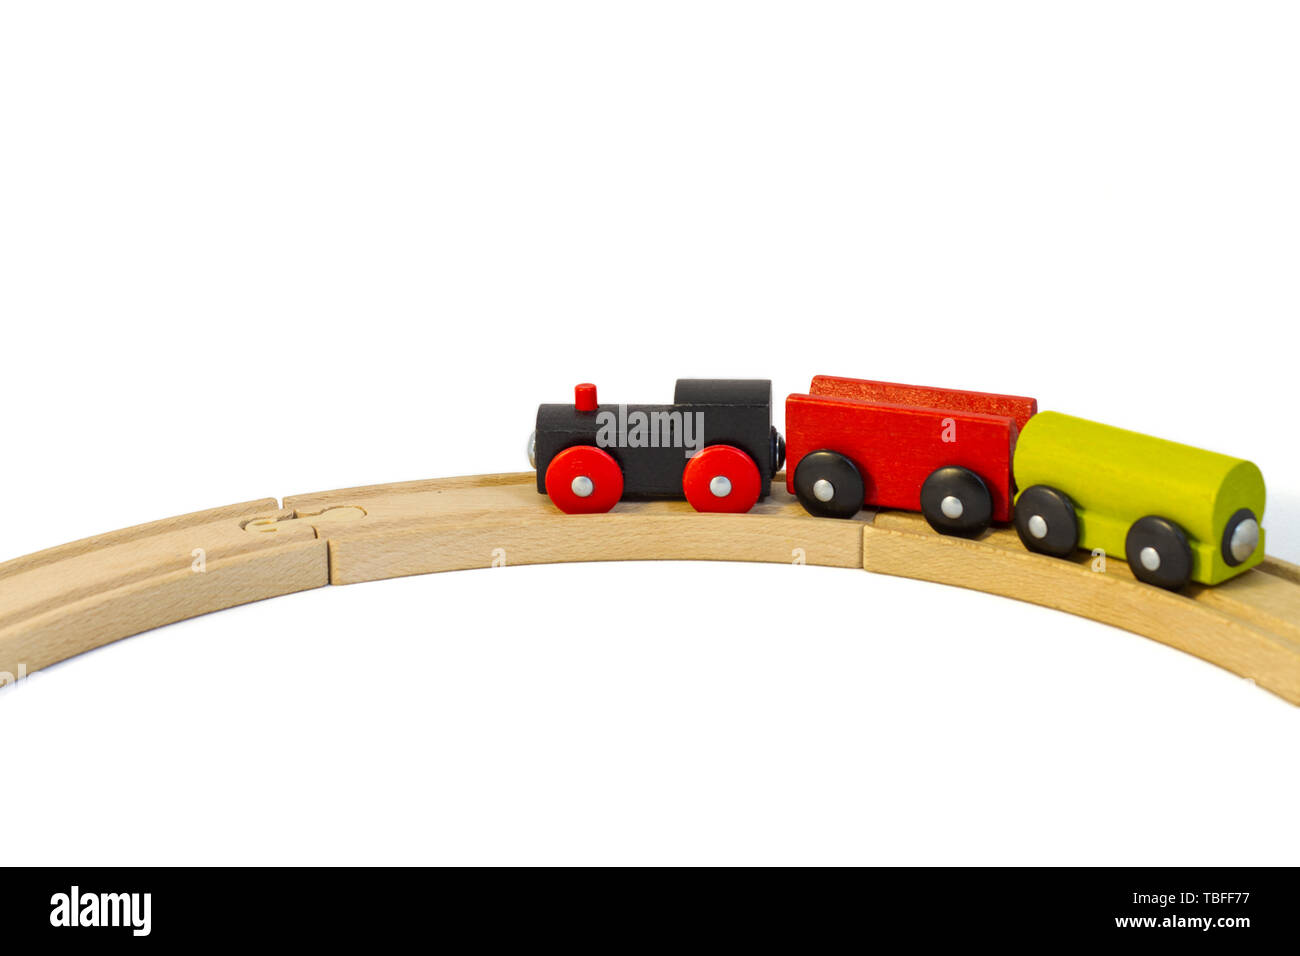 Colorful wooden toy train goes on rails. Isolated on white background. Perfect template, concept for promotion, ad, sale, poster, web-banner, article. - Stock Image